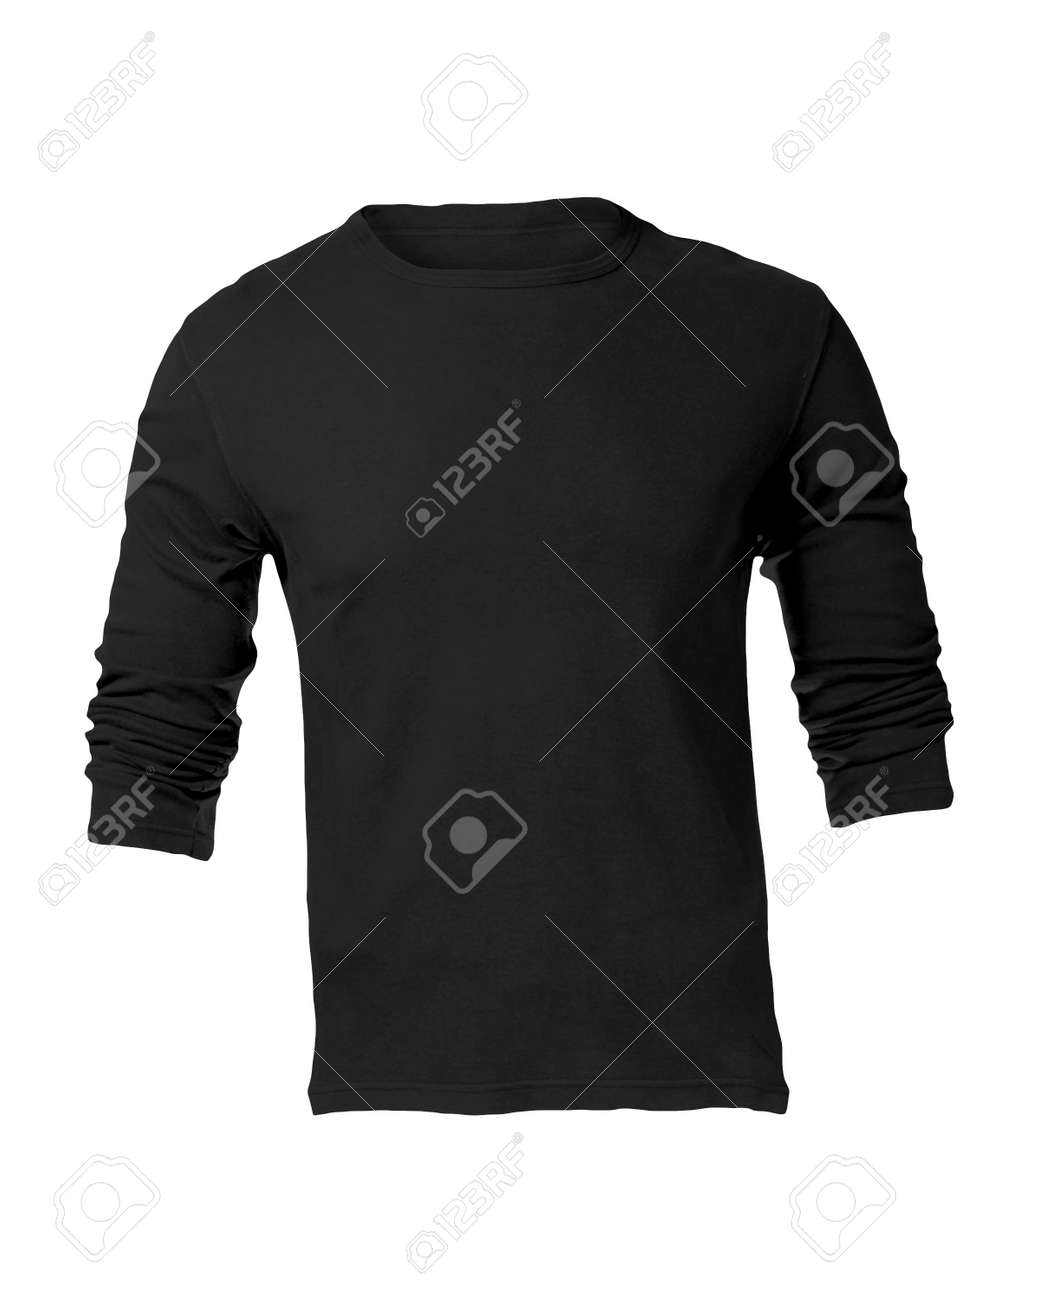 Mens Blank Black Long Sleeved Shirt Front Design Template Stock Photo